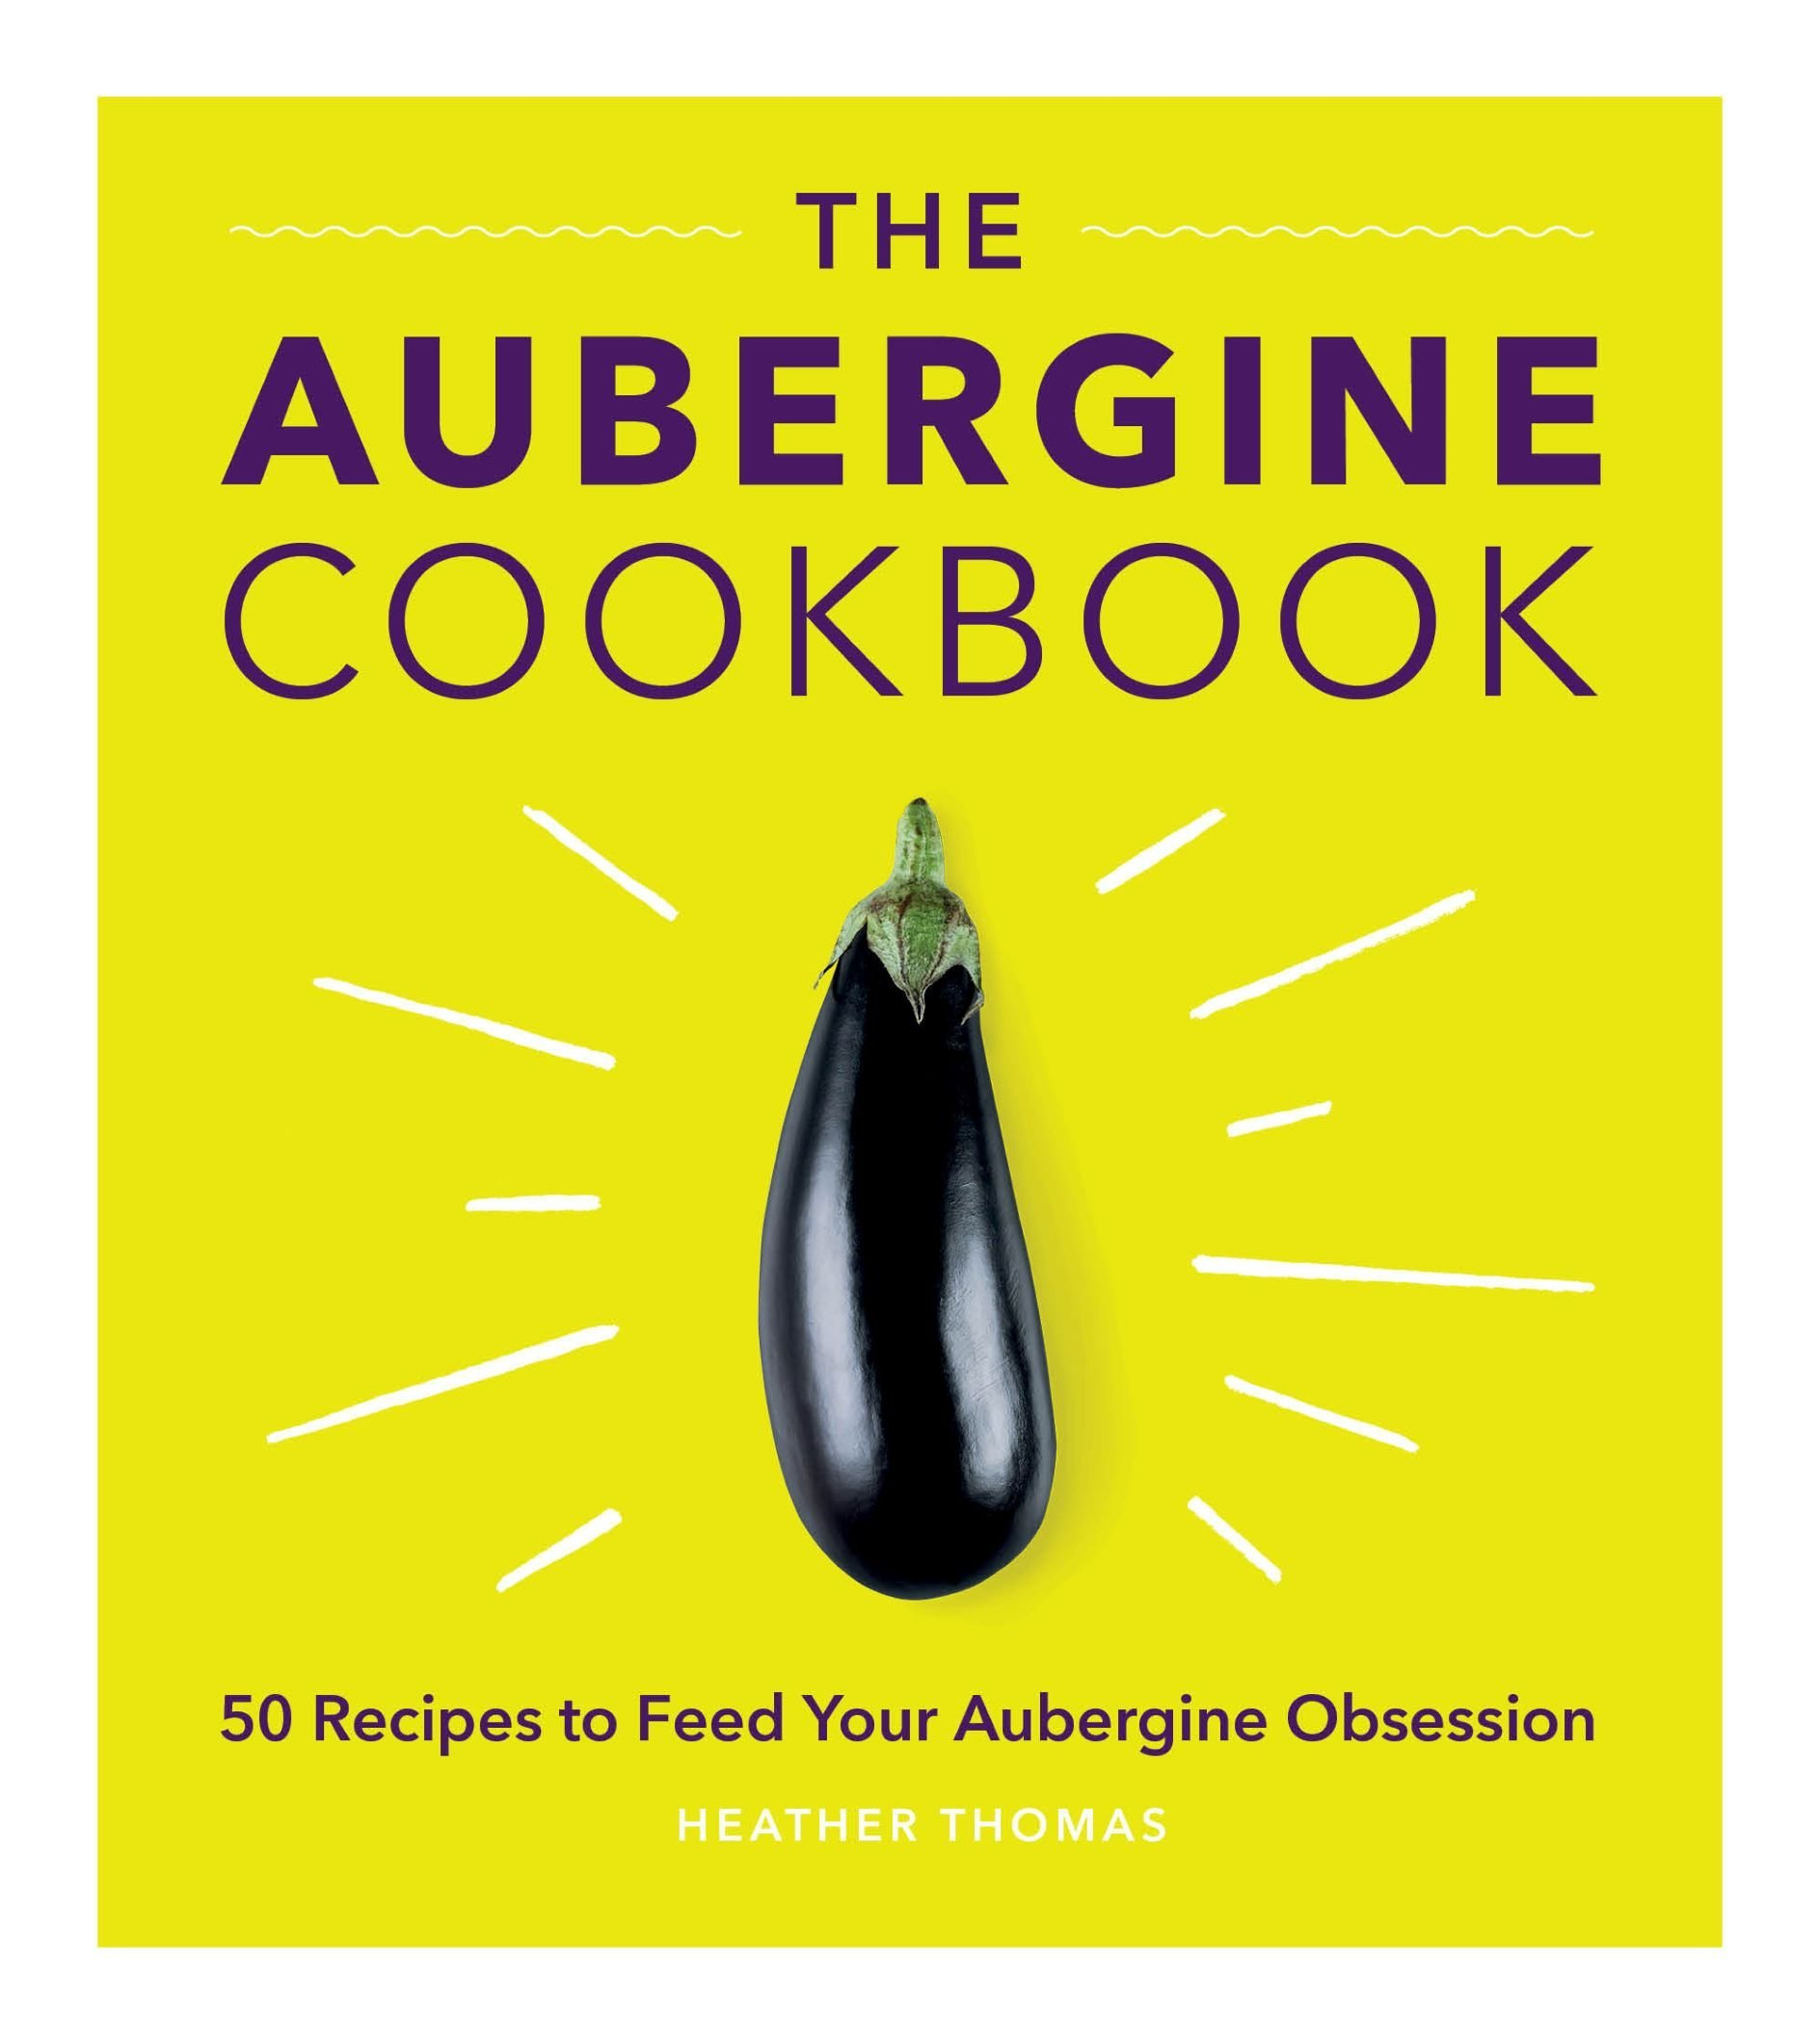 Why we love the cookbook entirely dedicated to aubergines